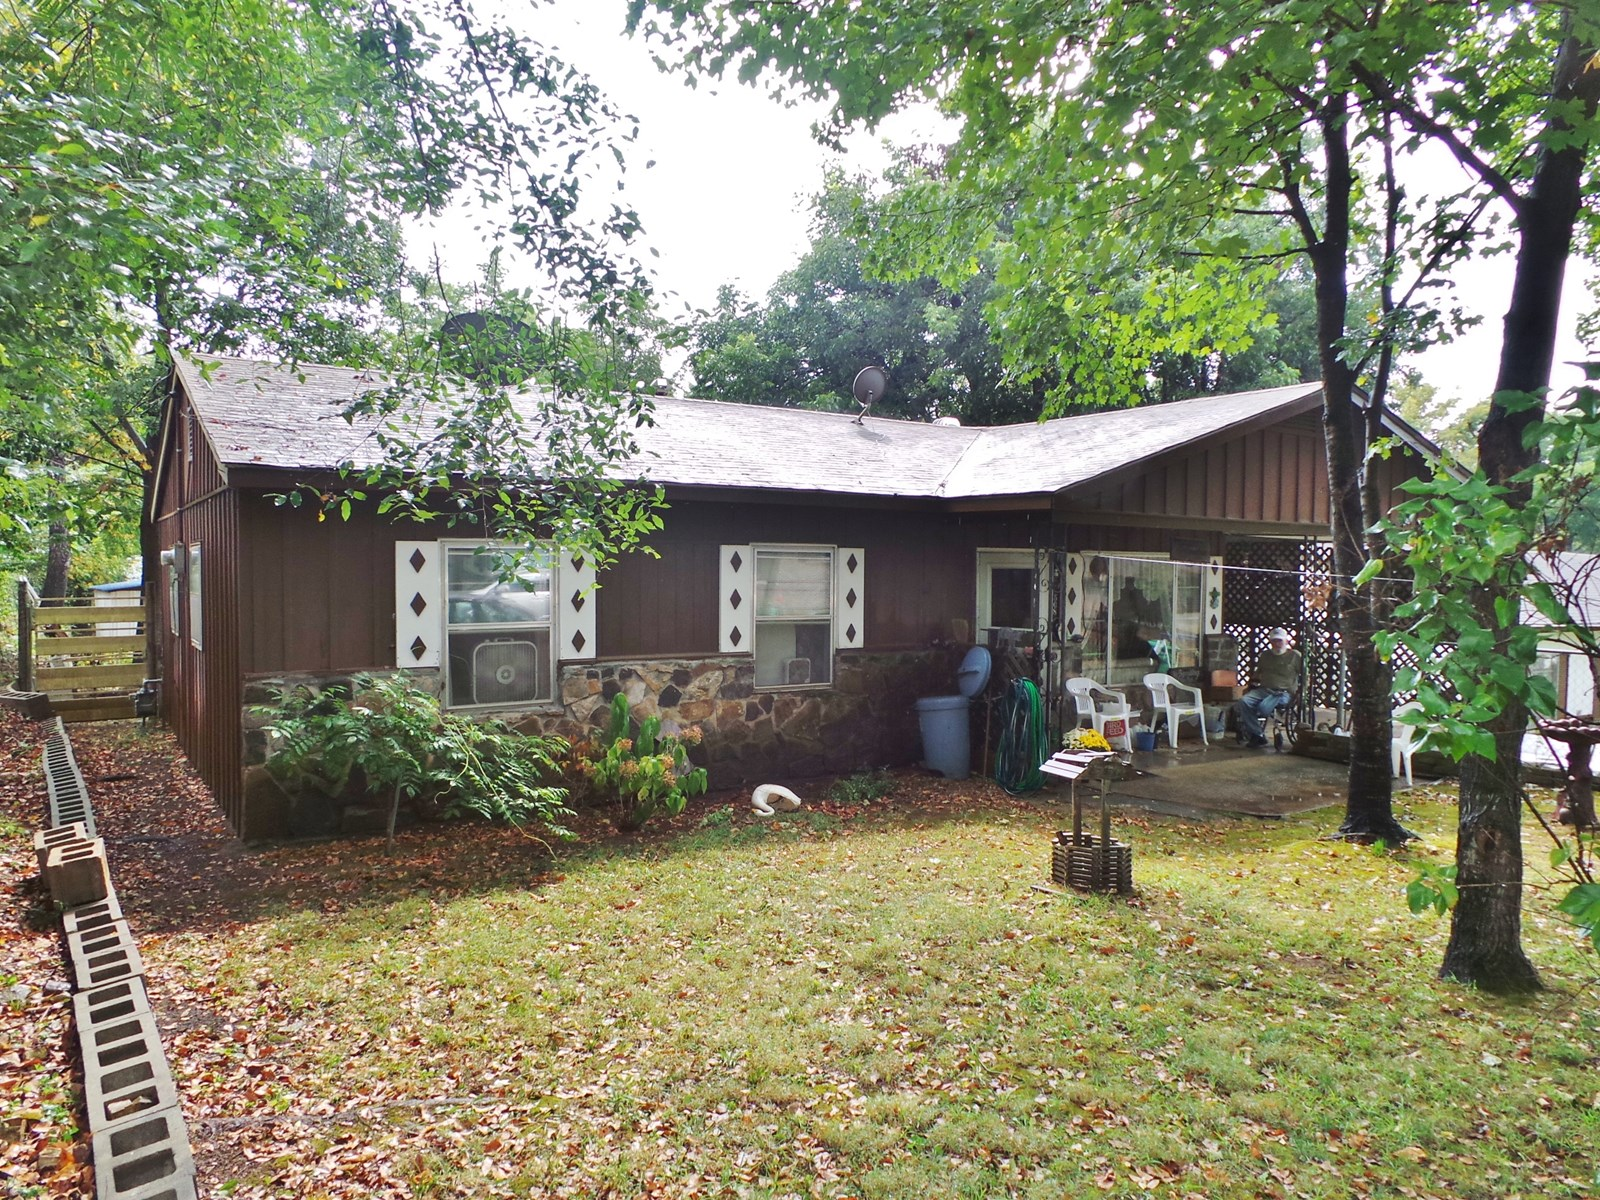 HOME IN THE TOWN OF FLIPPIN ARKANSAS FOR SALE